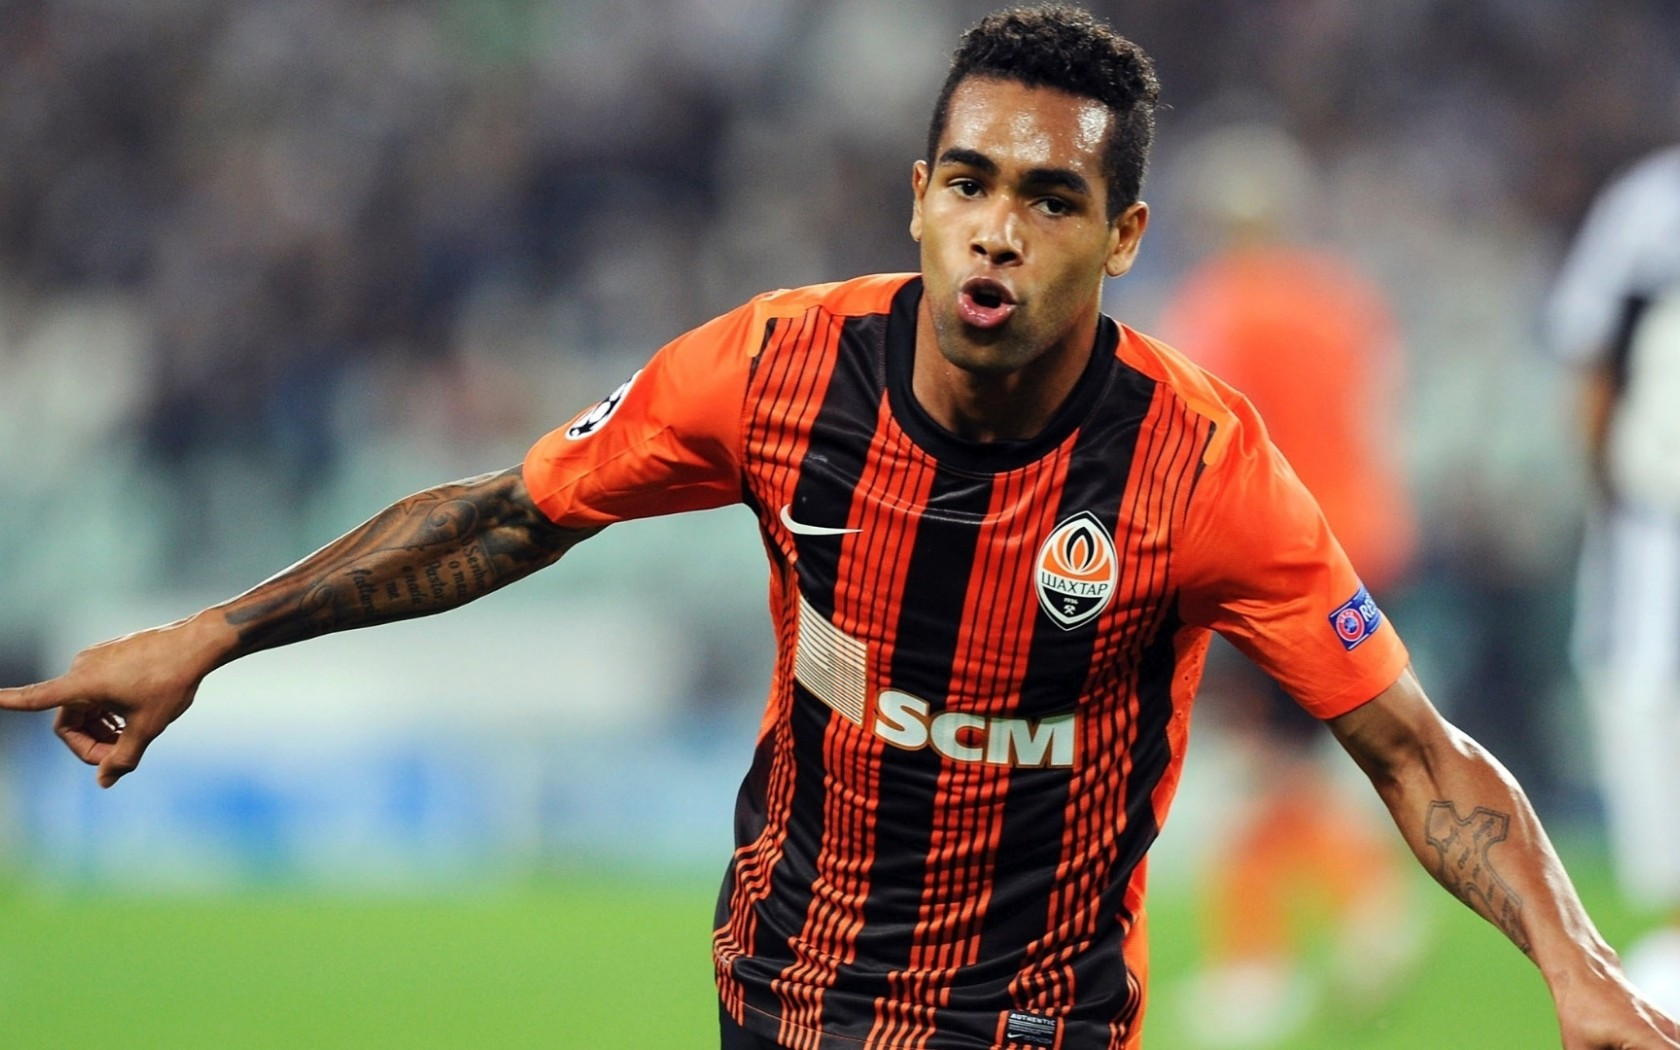 alex_teixeira_football_player-1